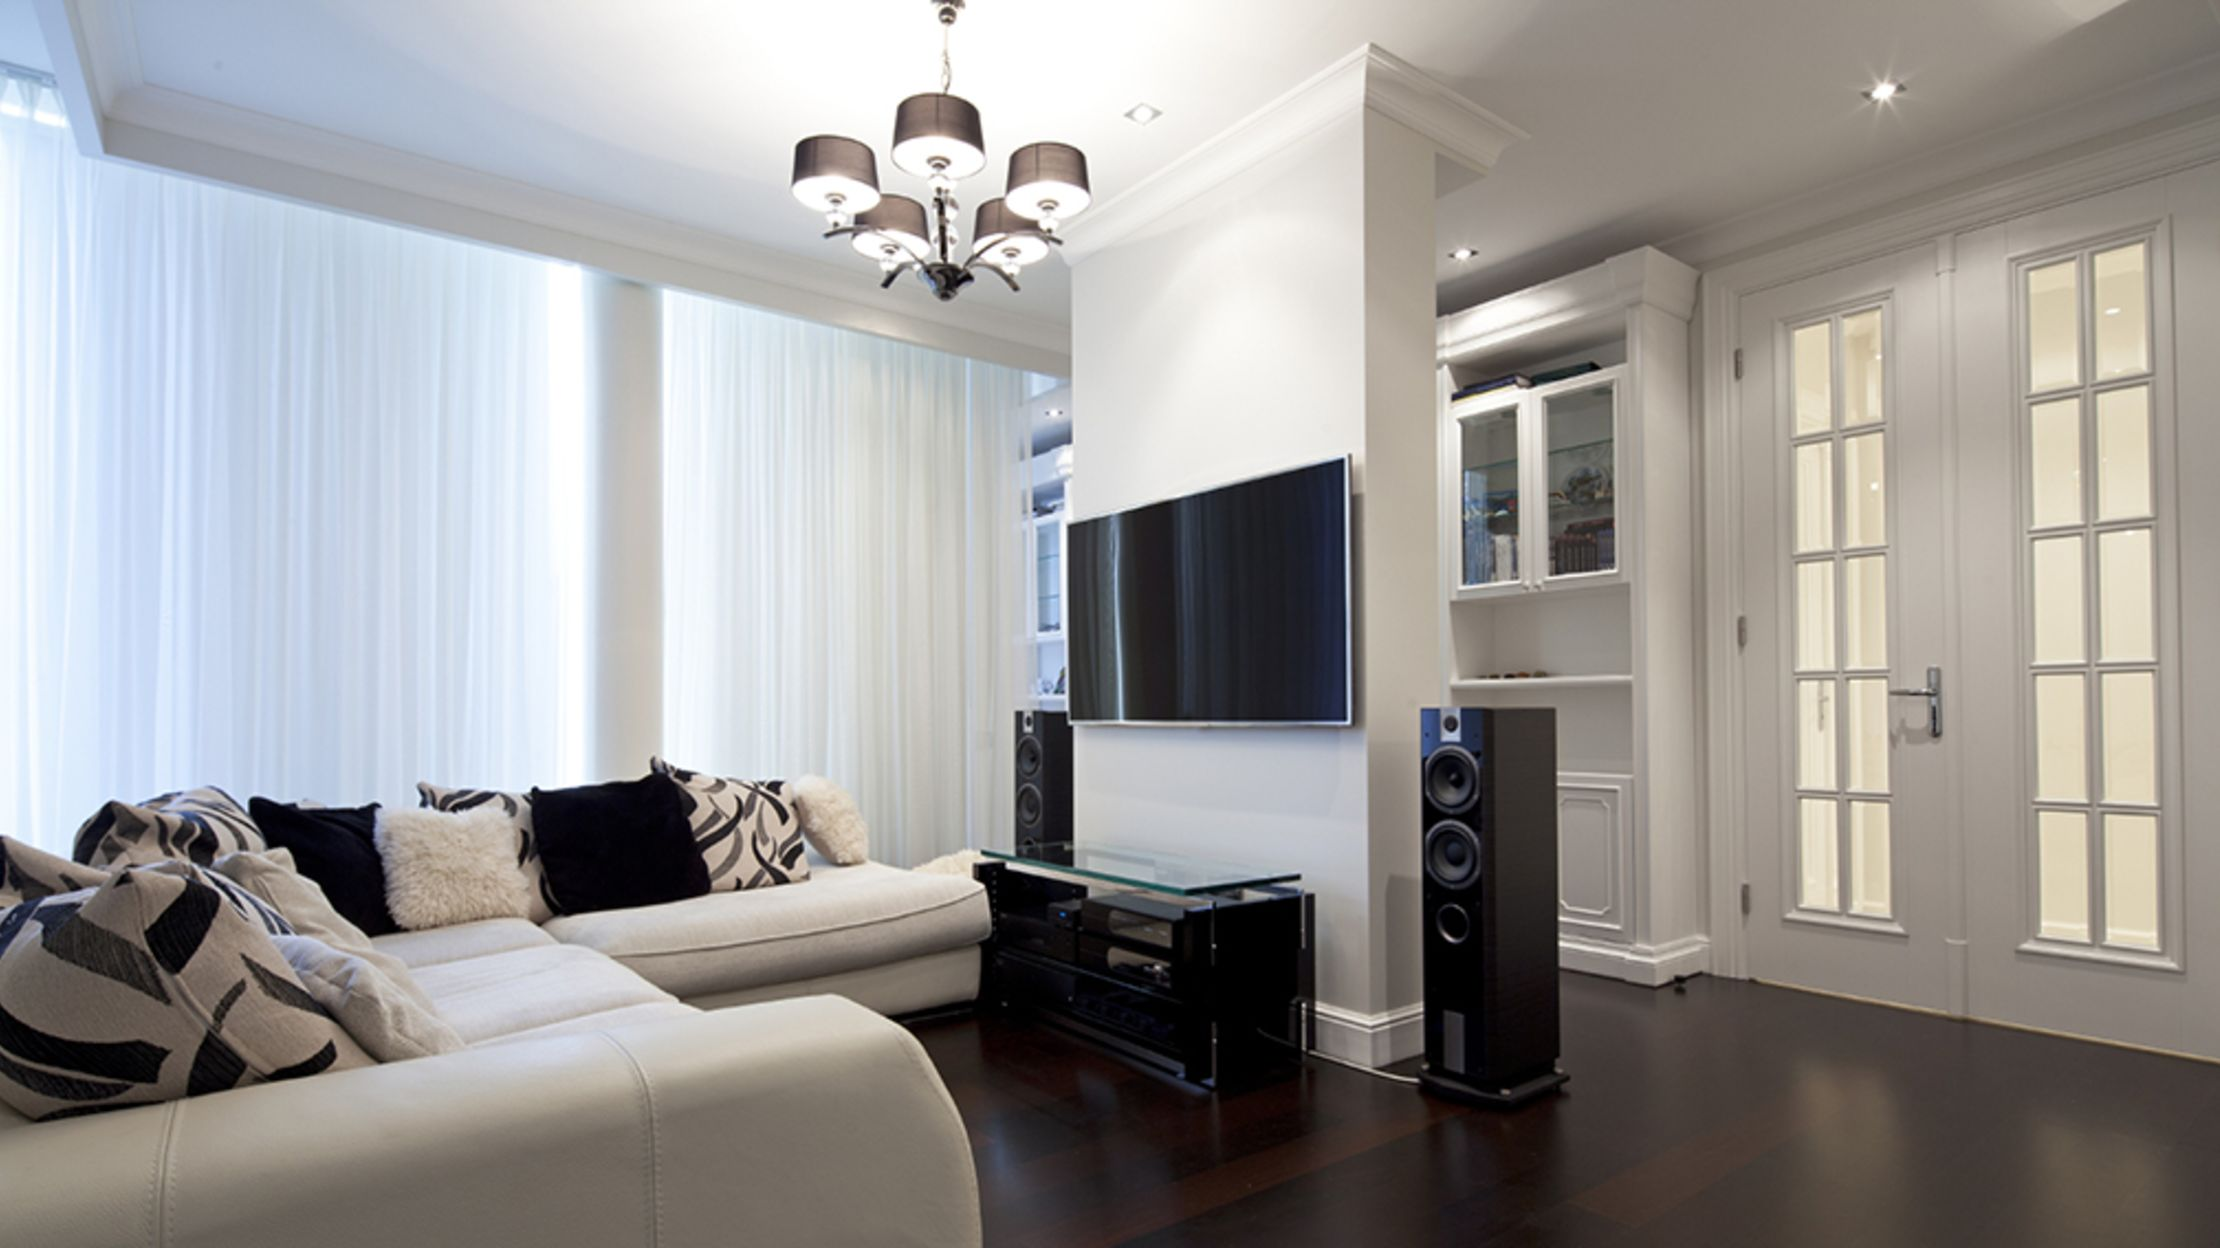 8 Simple Ways to Improve Your Home Sound System | Mental Floss